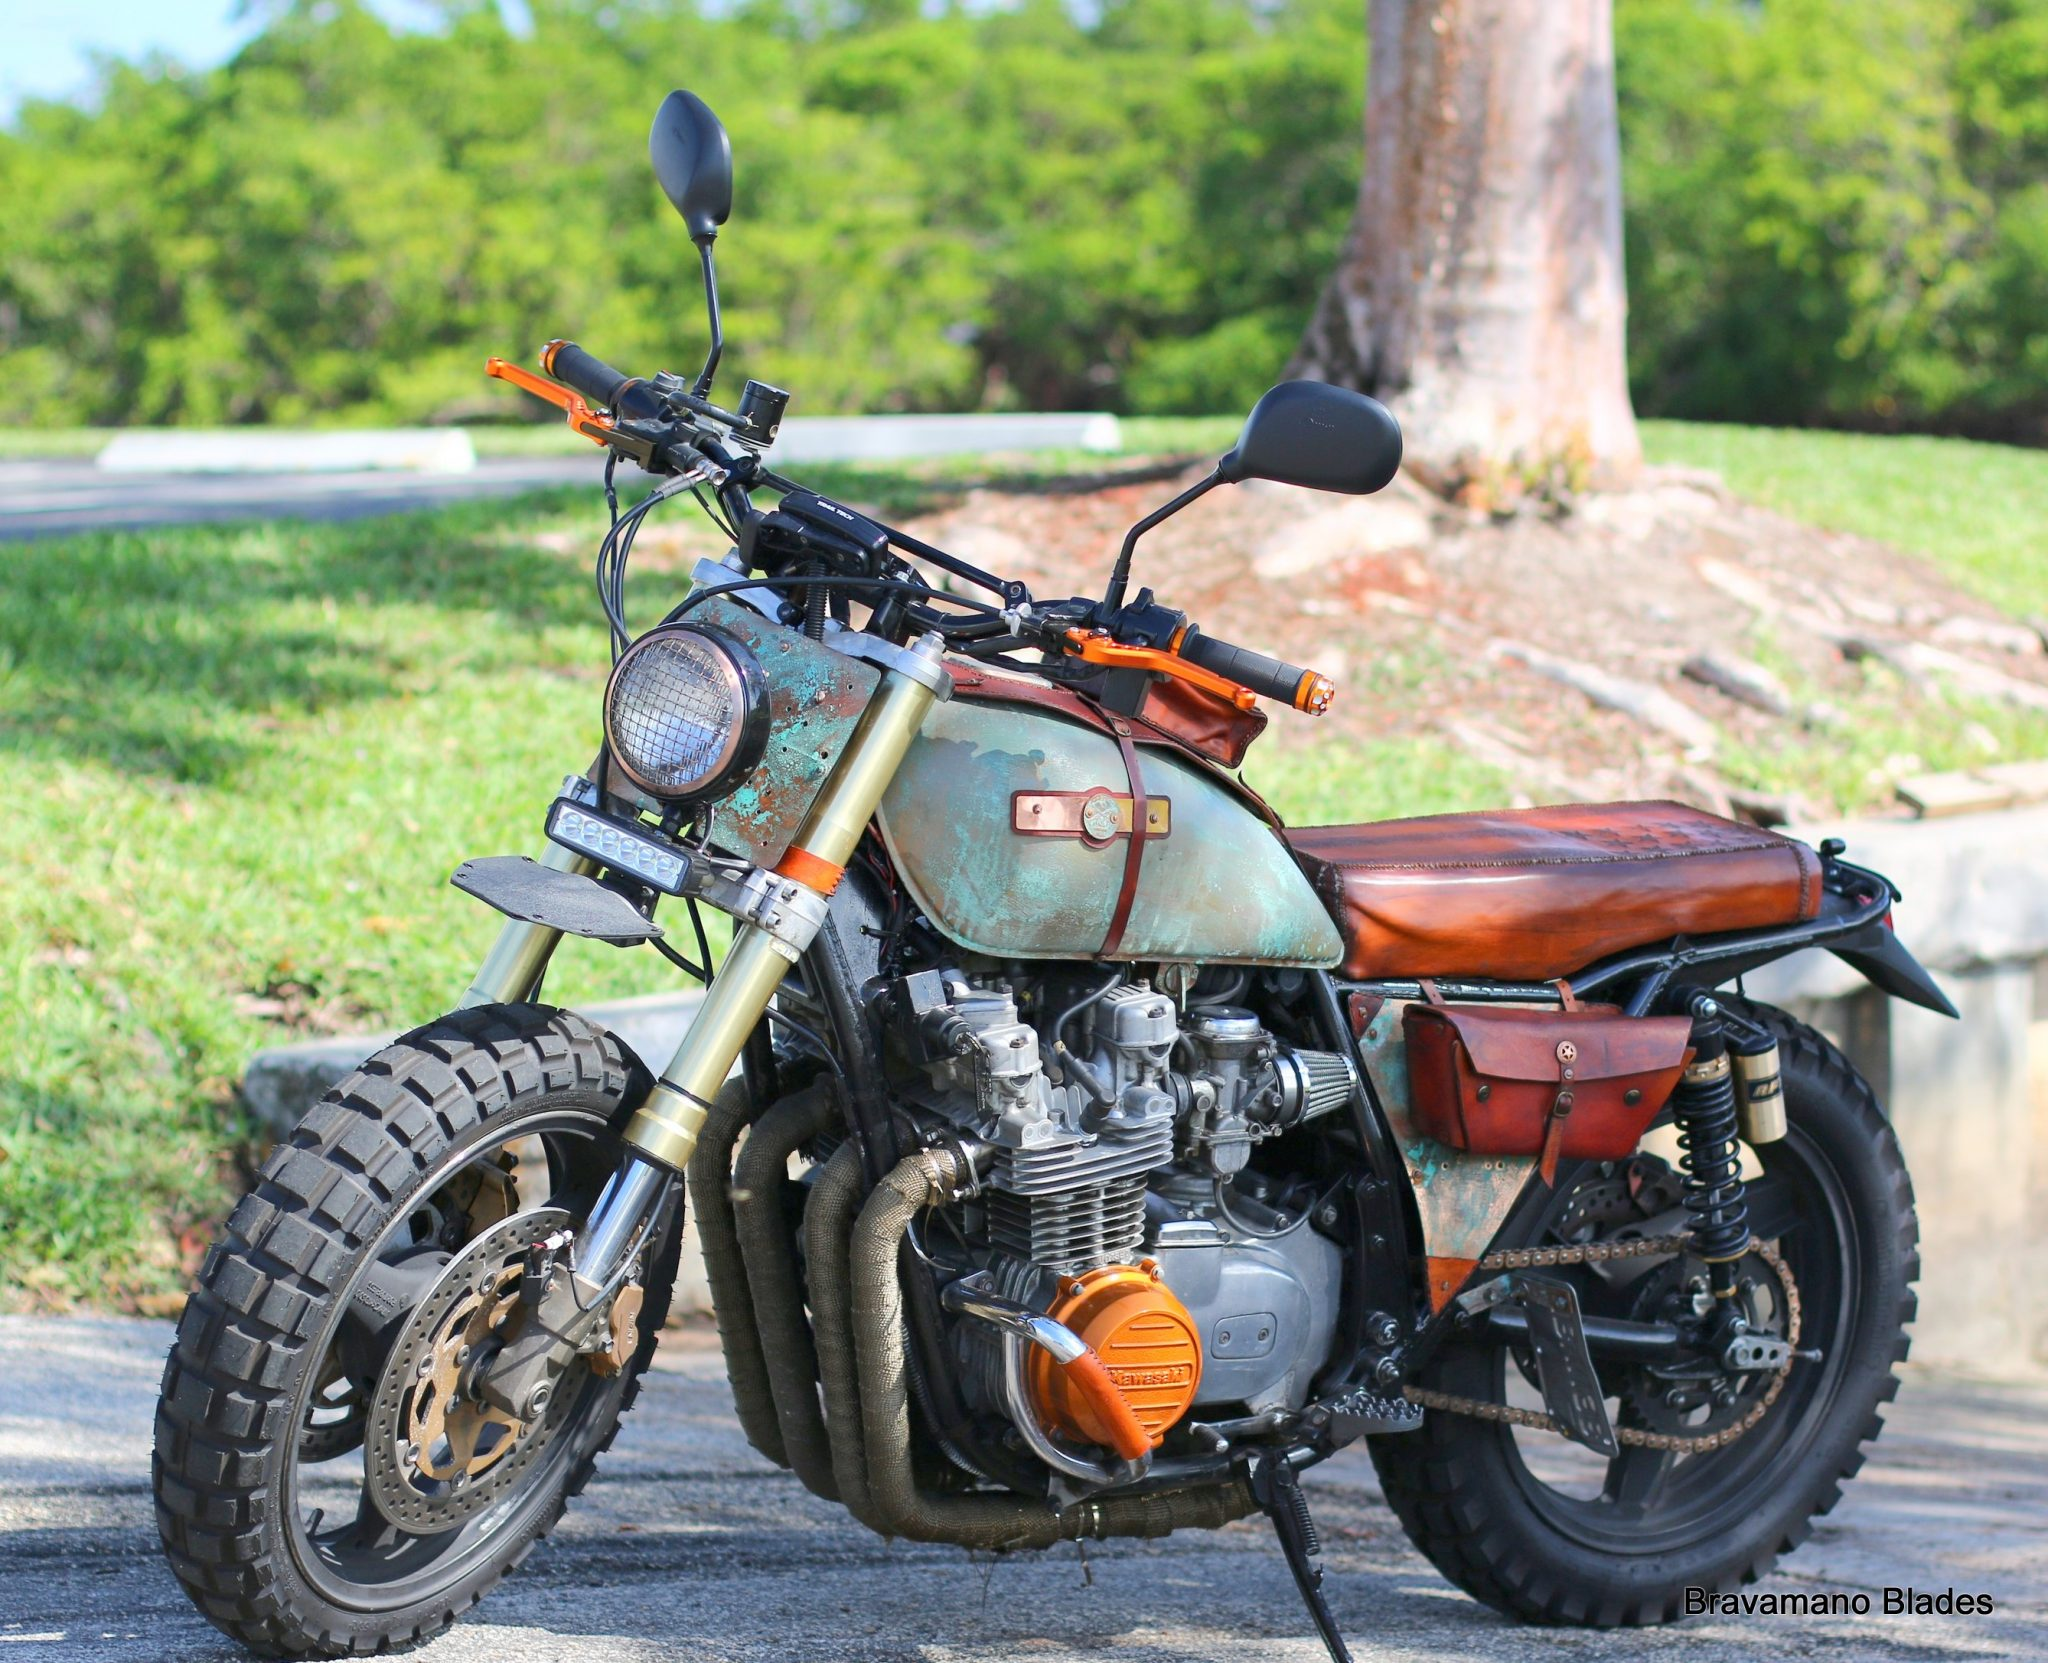 kz 750 custom Scrambler | Posts by CafeRacerForSale | Bloglovin'